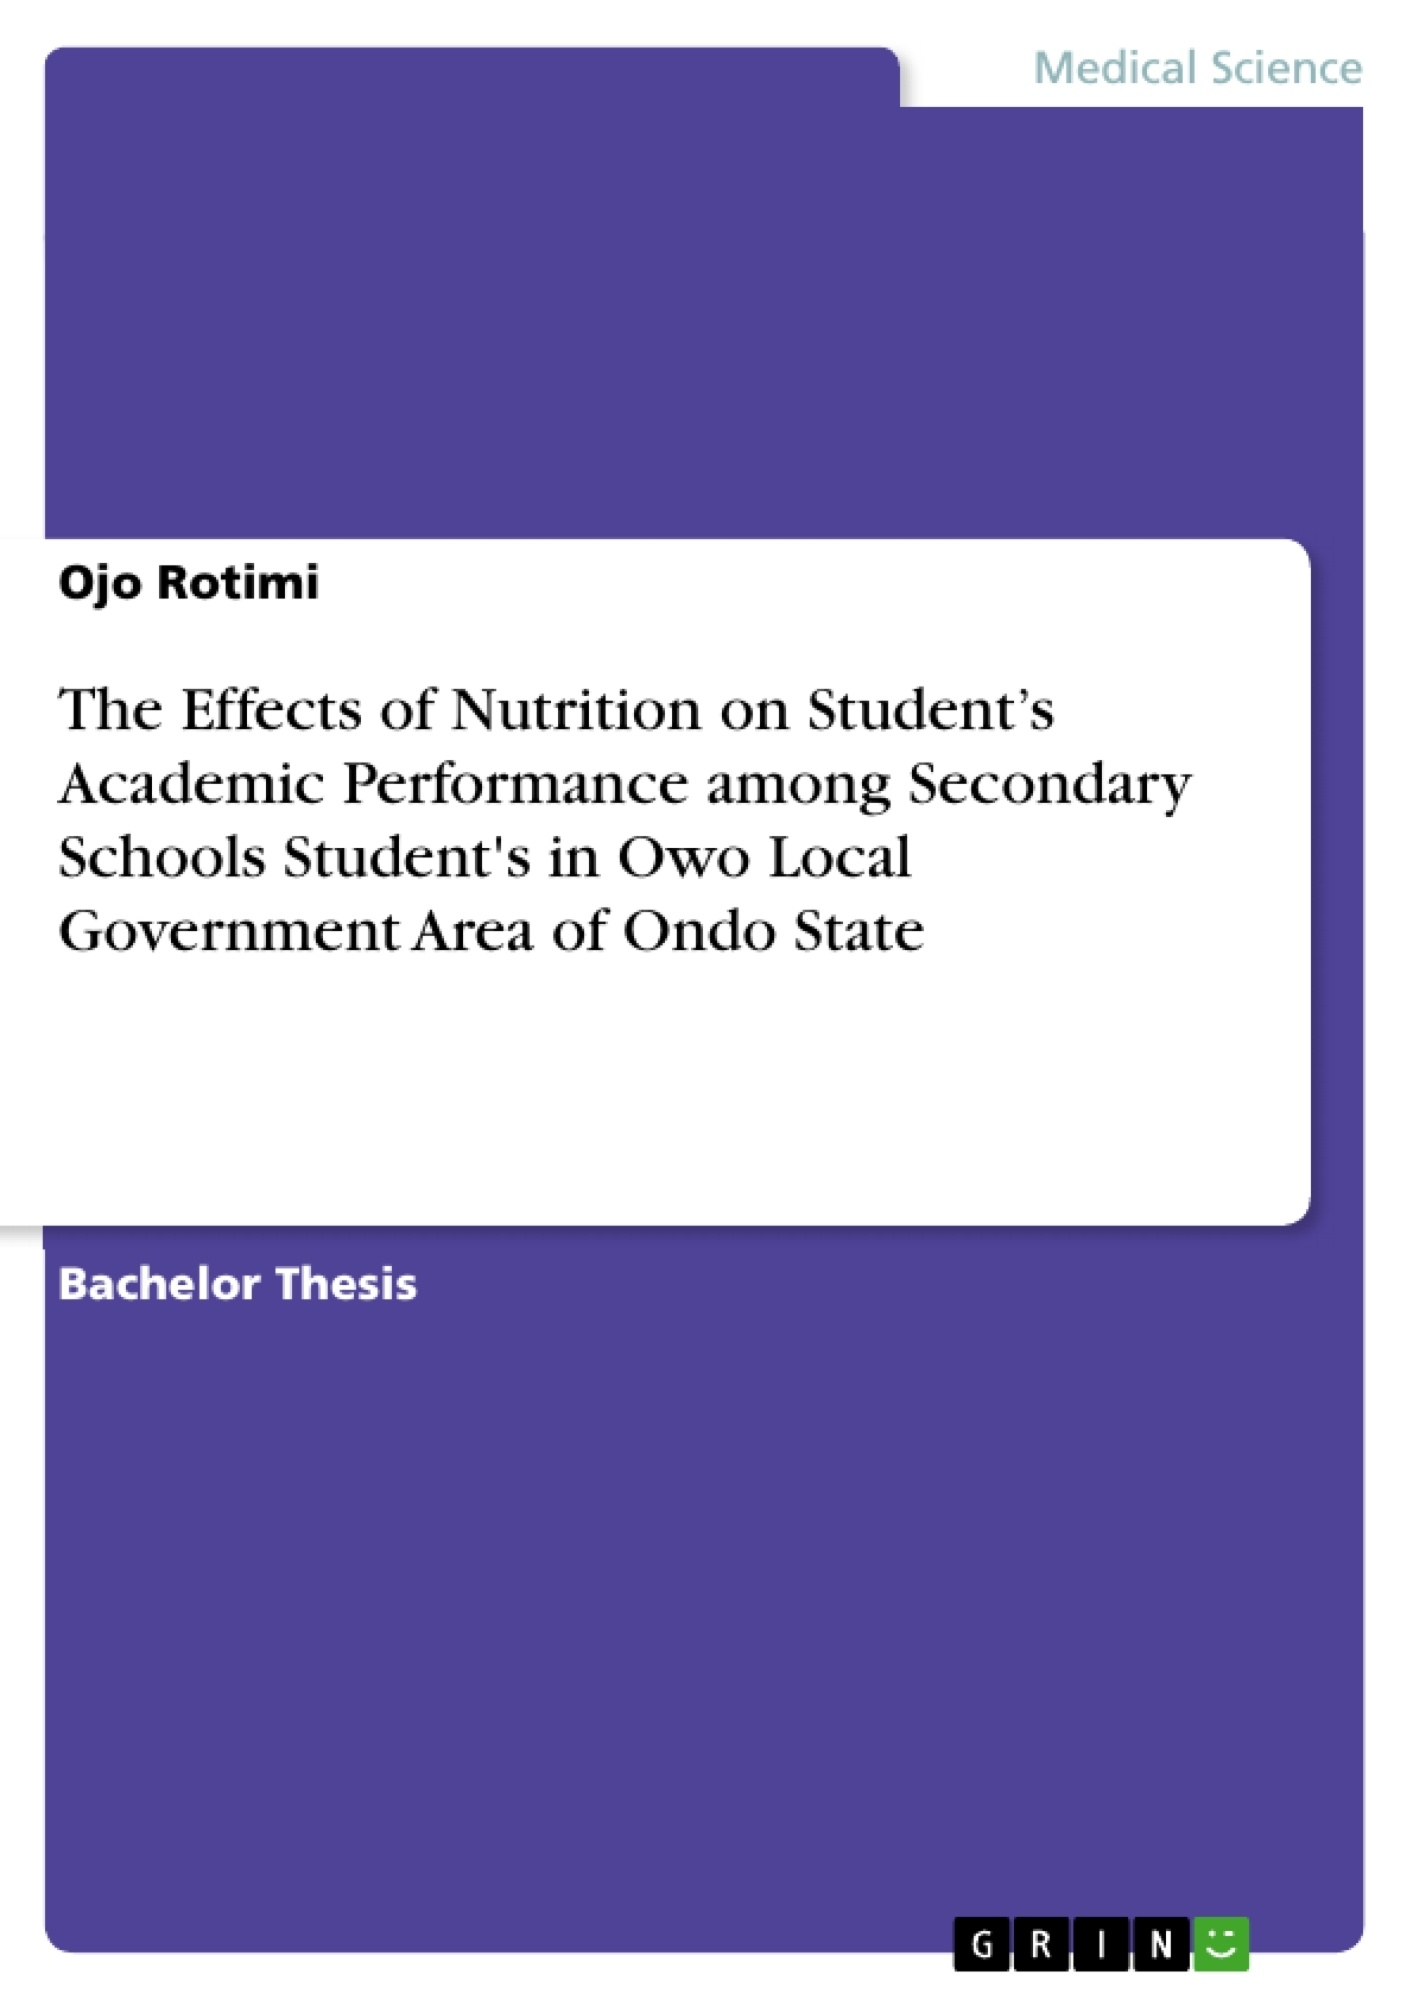 Title: The Effects of Nutrition on Student's Academic Performance among Secondary Schools Student's in Owo Local Government Area of Ondo State